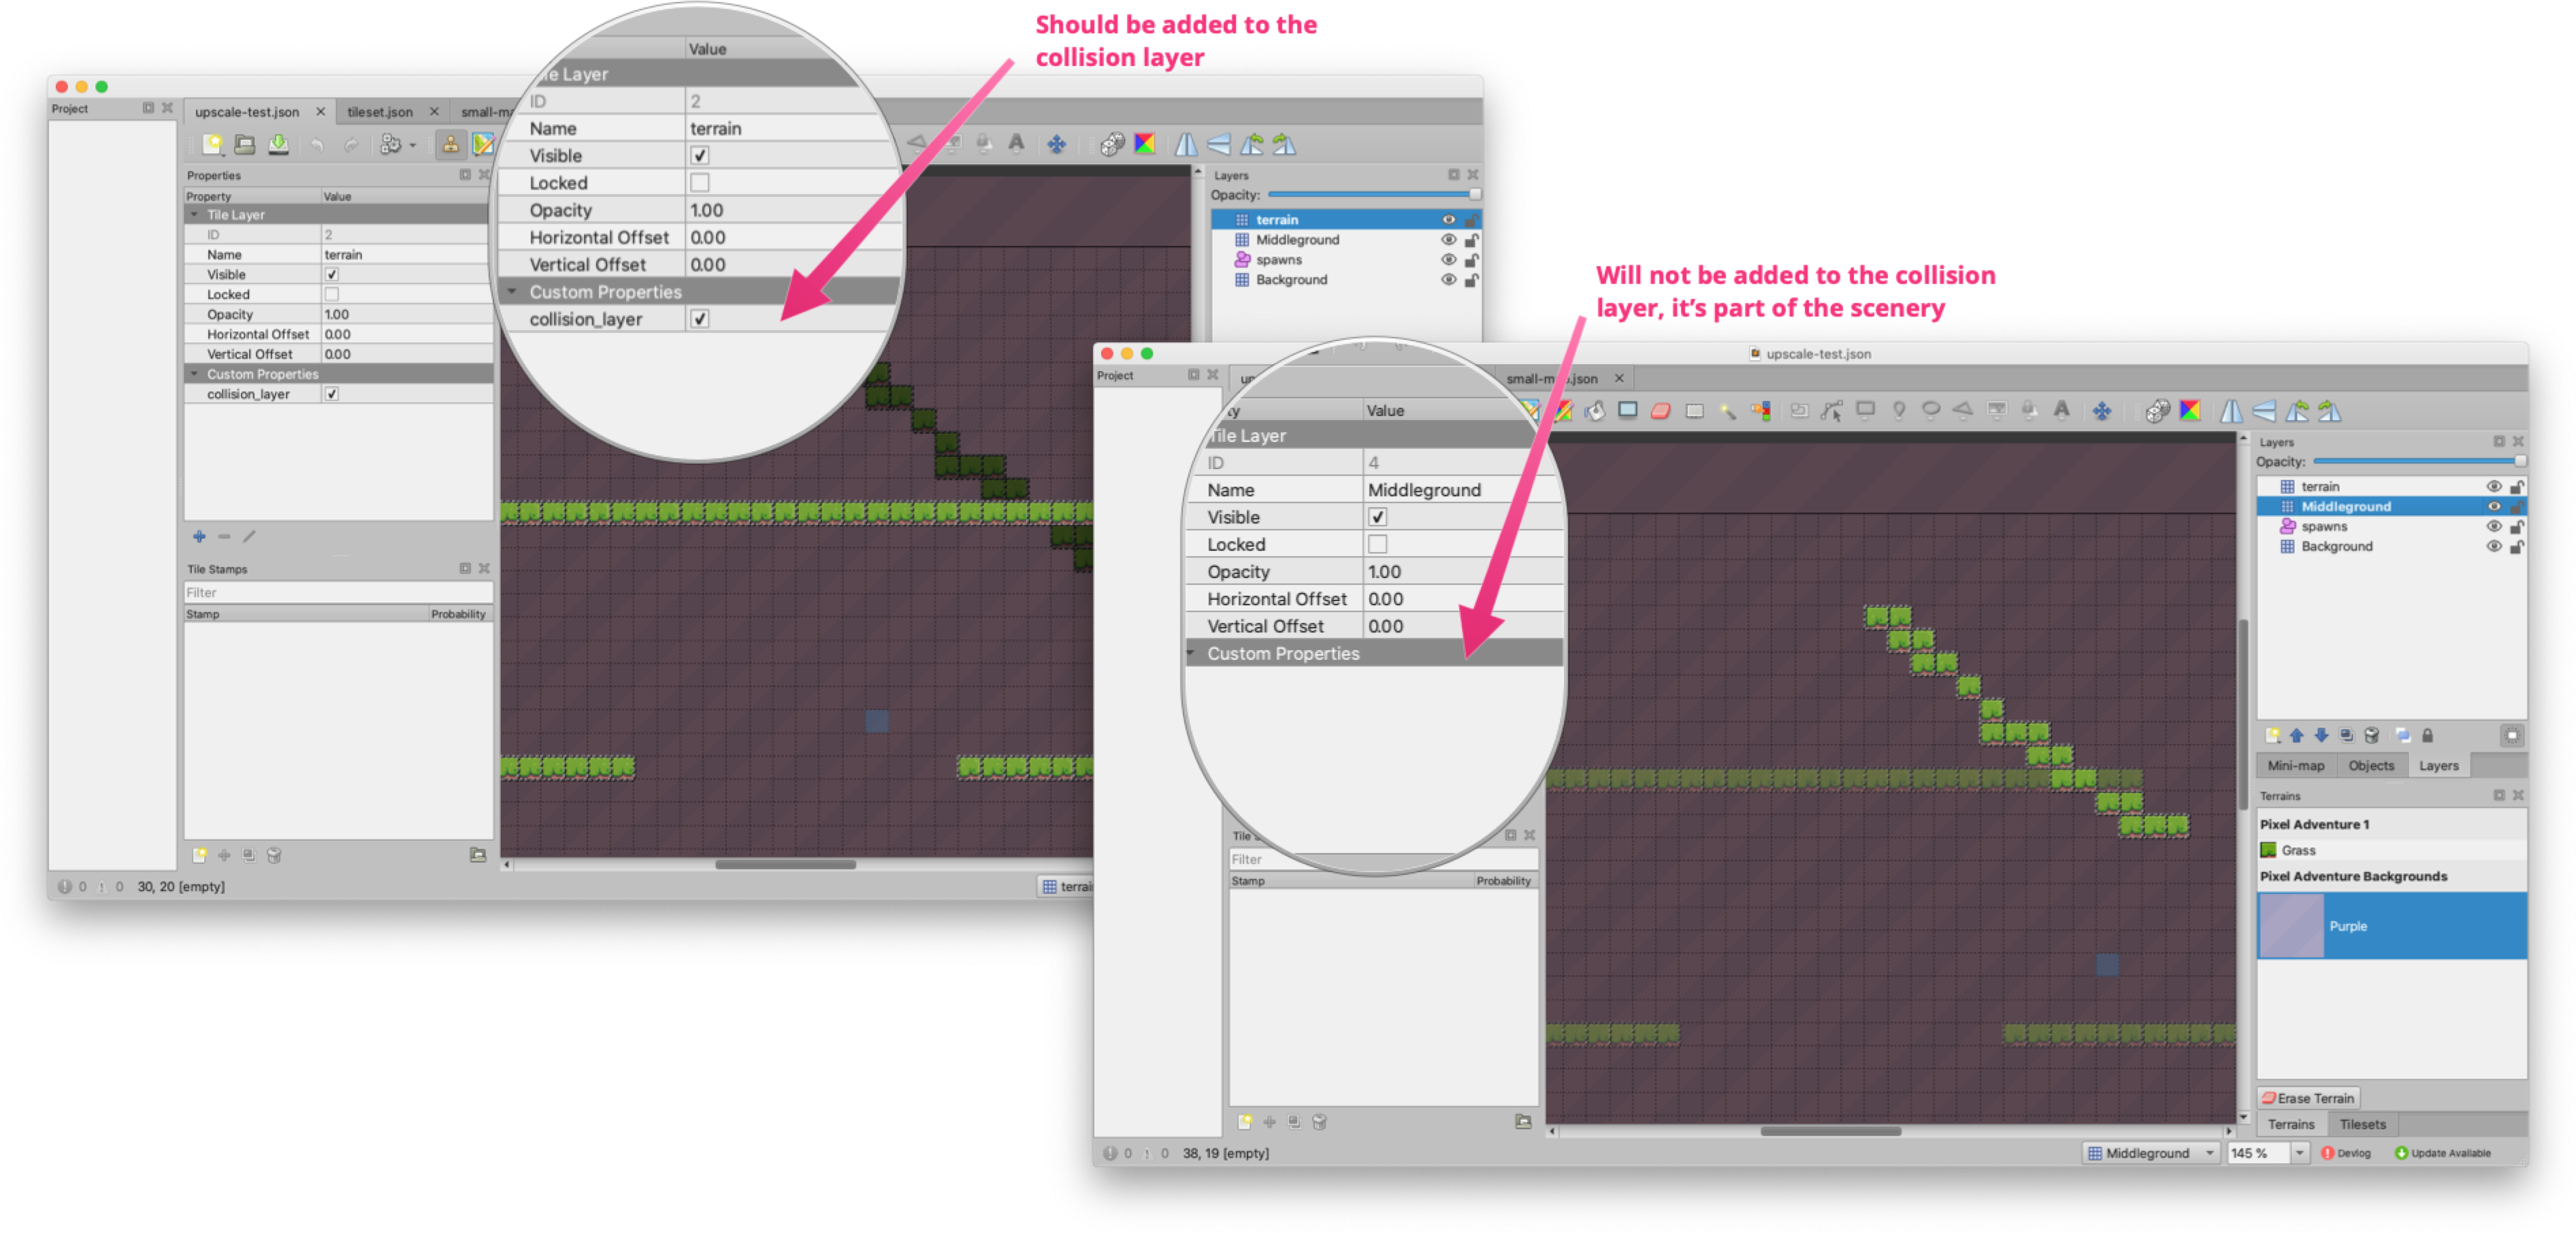 A screenshot that shows how the collision_layer is set as a custom property on map layers